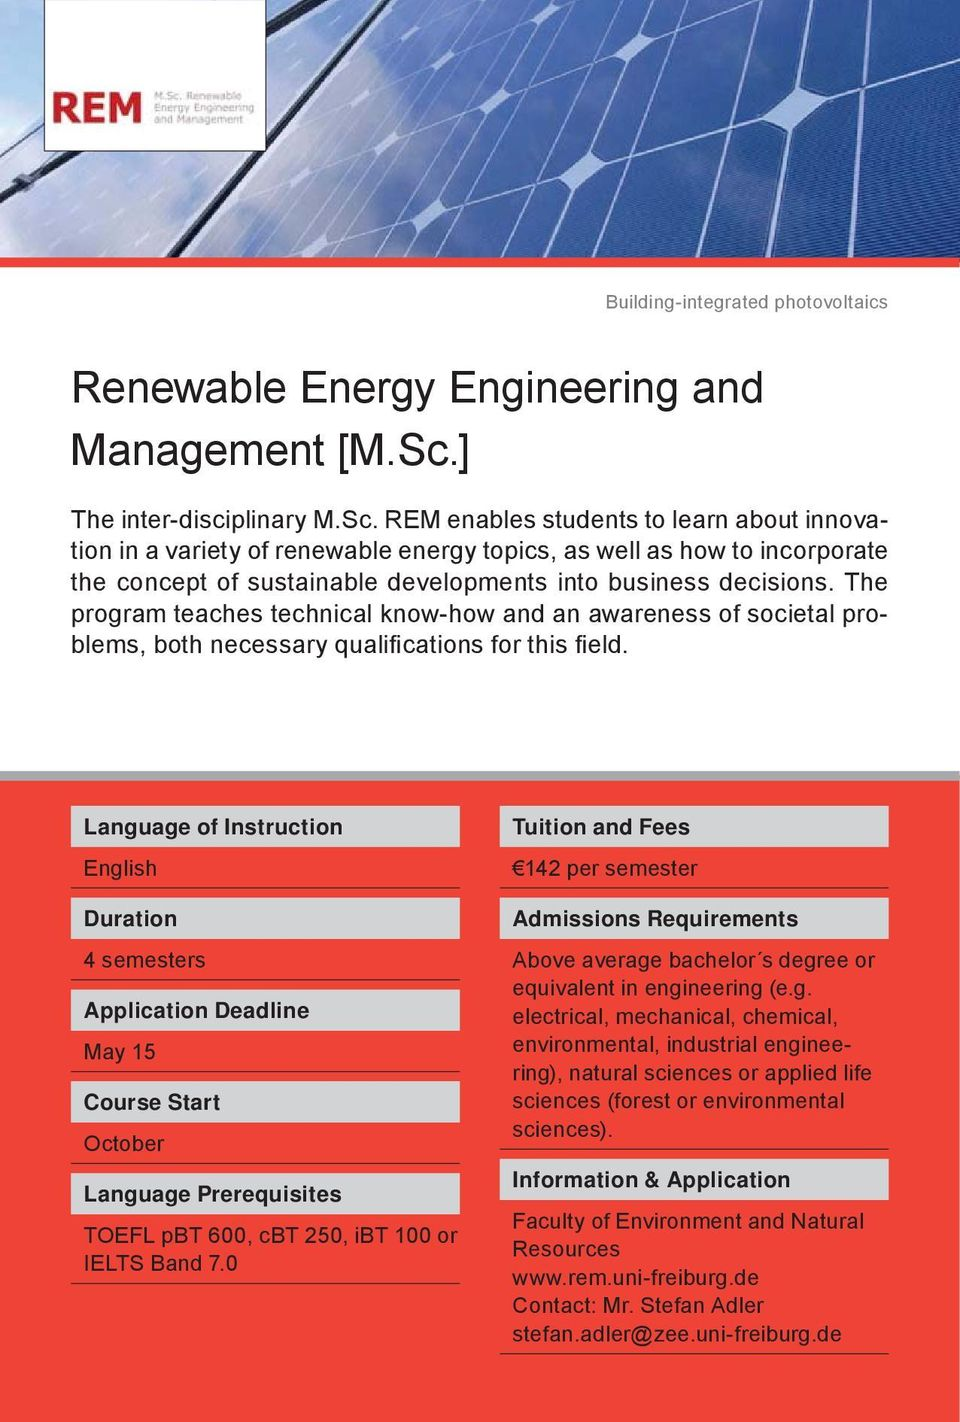 REM enables students to learn about innovation in a variety of renewable energy topics, as well as how to incorporate the concept of sustainable developments into business decisions.